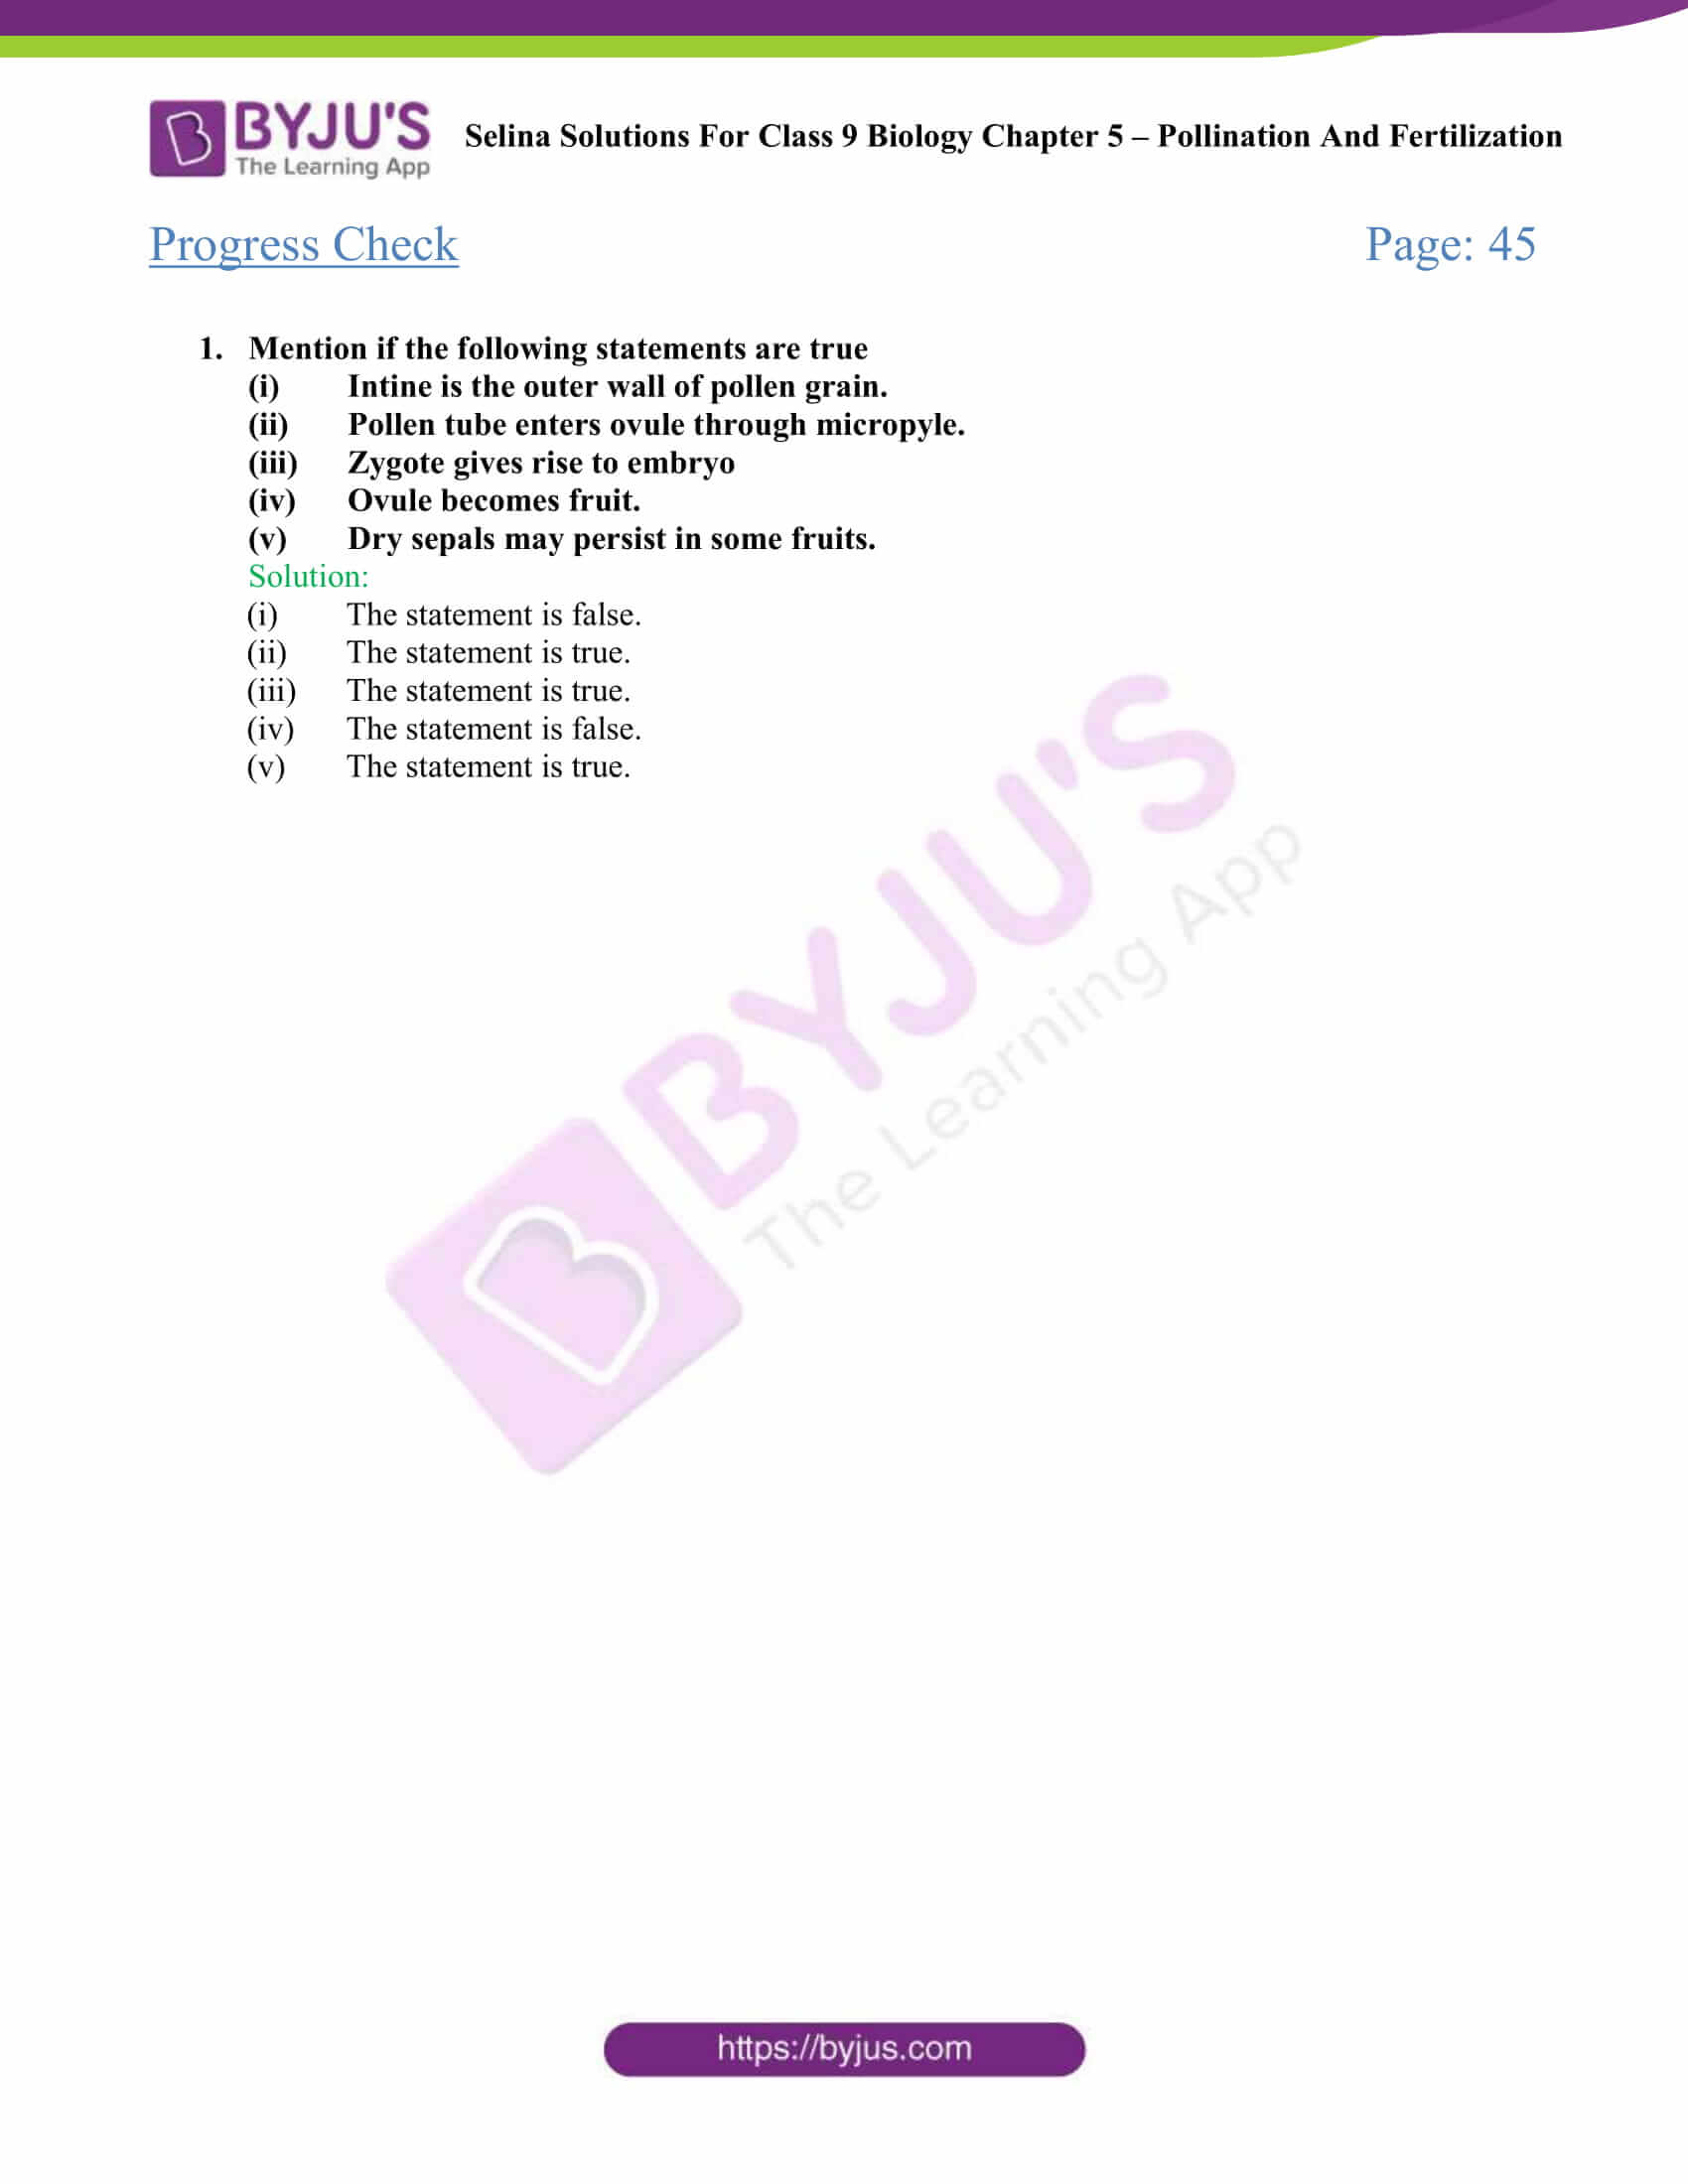 Selina Solutions For Class 9 Biology Chapter 5 Pollination And Fertilization part 02